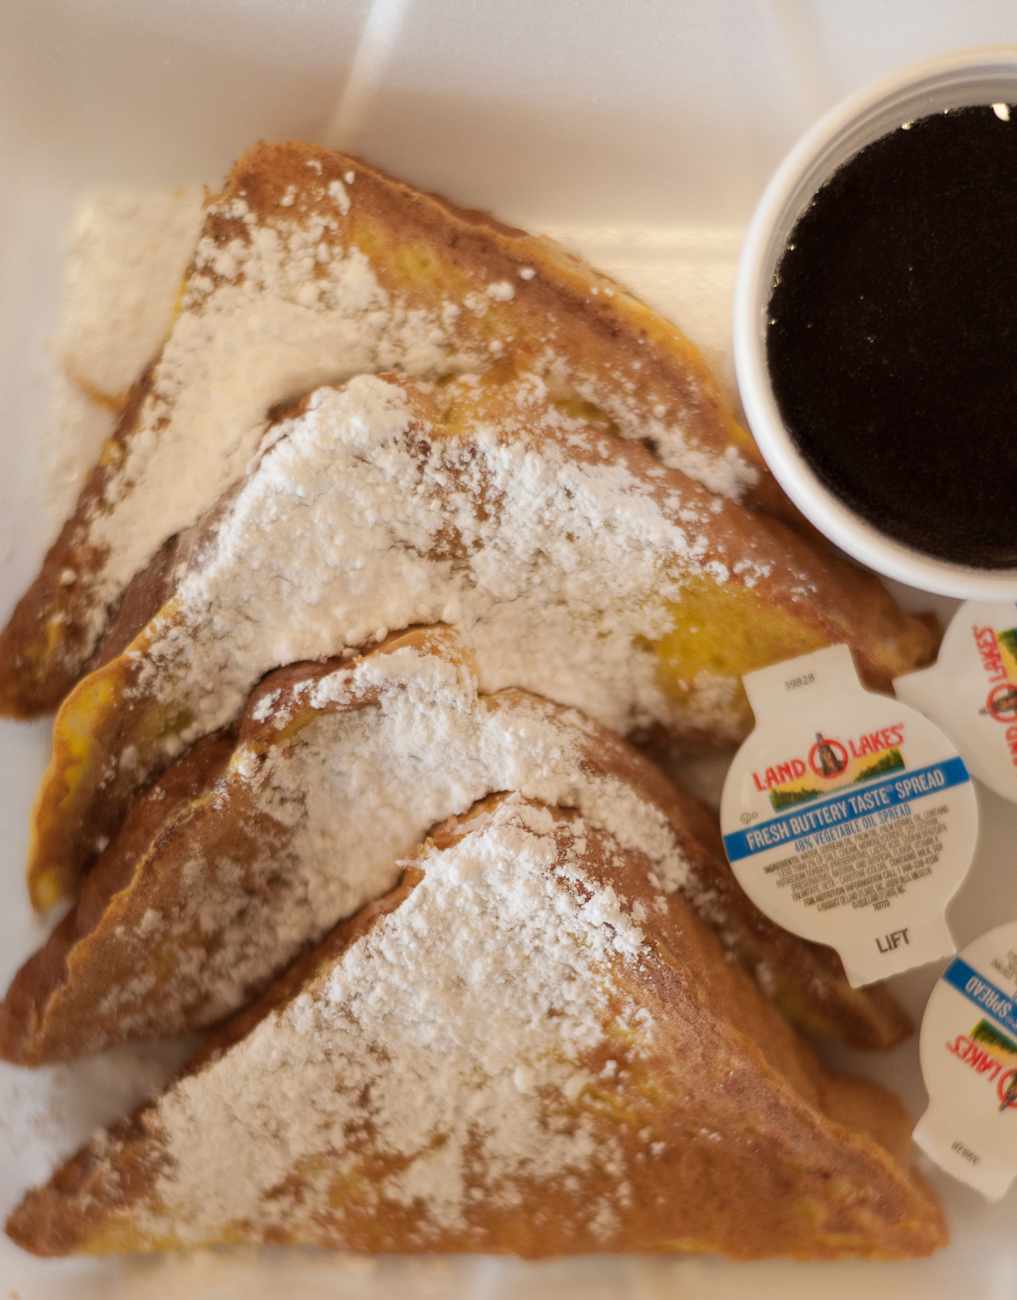 French Toast with butter, syrup, and powdered sugar{ }/ Image: Kellie Coleman // Published: 4.8.20